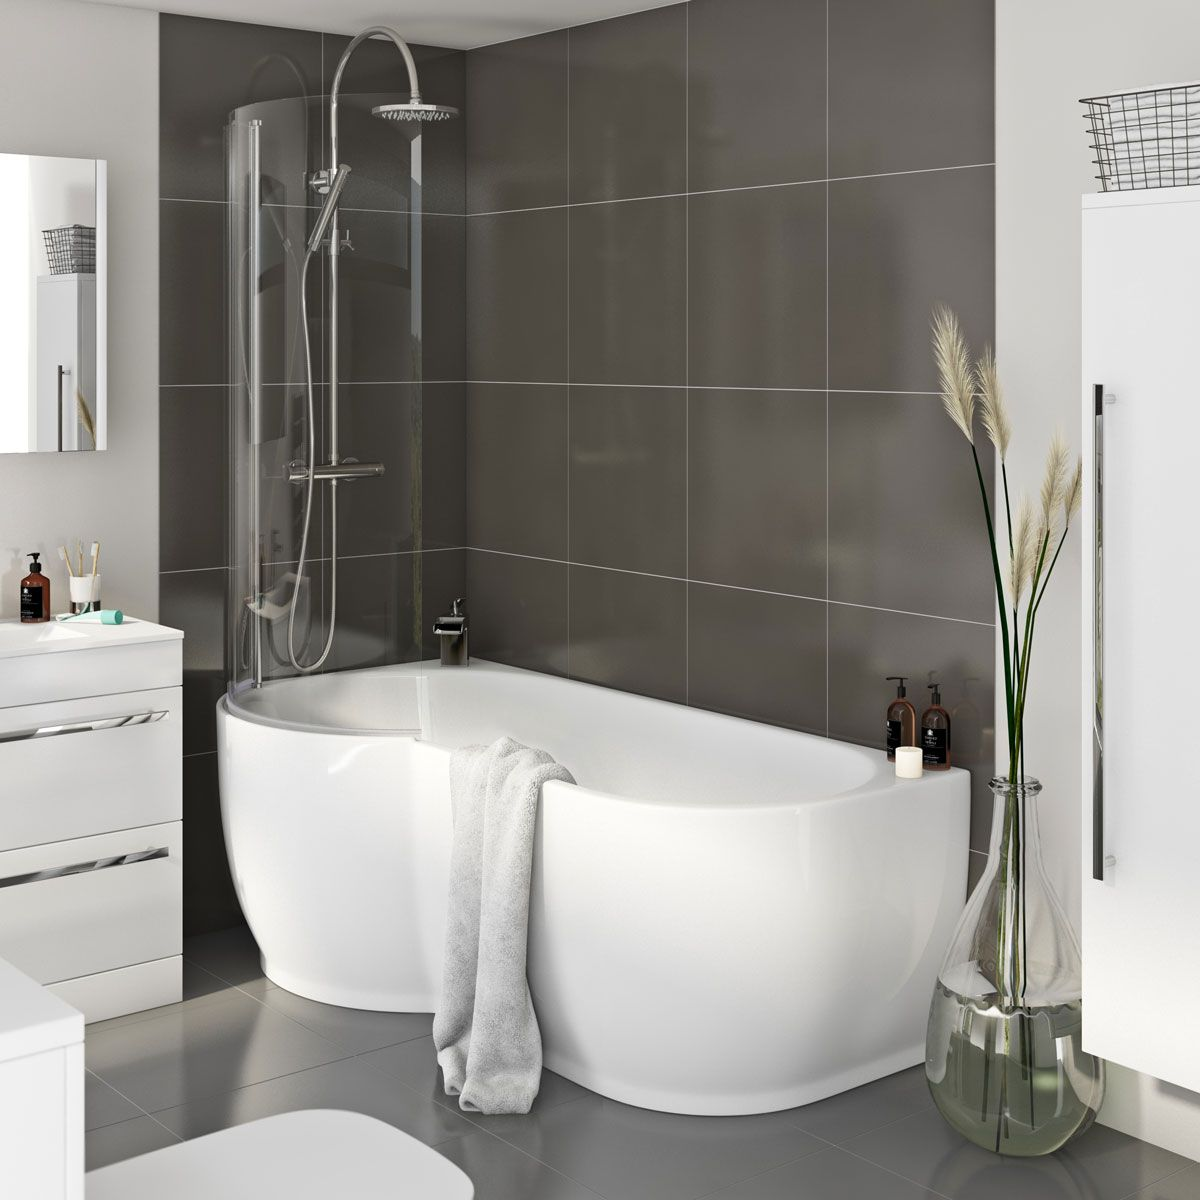 5 Tips on Buying the Best Bathroom Suites | Screens, Bath and Shapes